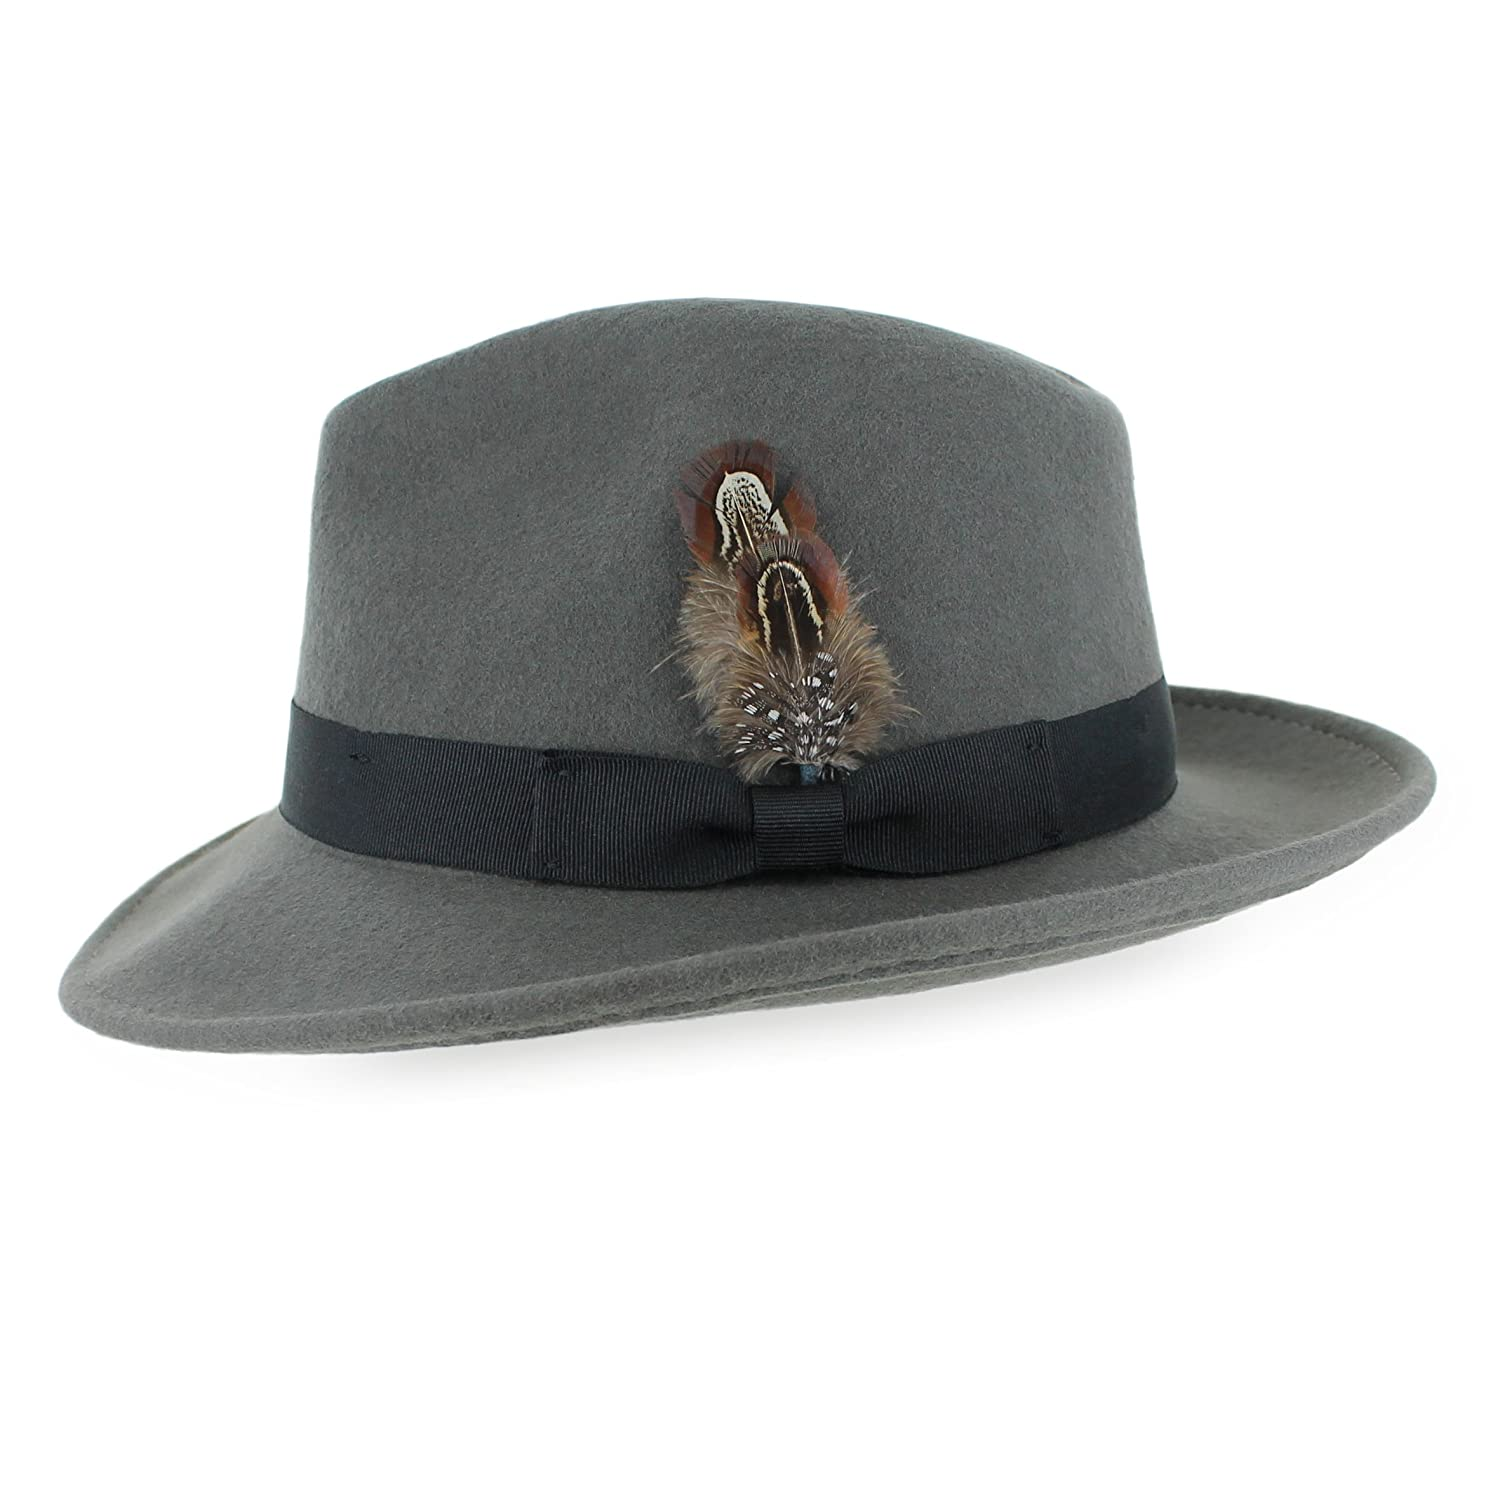 1940s Mens Hats | Fedora, Homburg, Pork Pie Hats Belfry Crushable Dress Fedora Mens Vintage Style Hat 100% Pure Wool in Black Blue Grey Pecan Brown and Striped Bands $39.95 AT vintagedancer.com